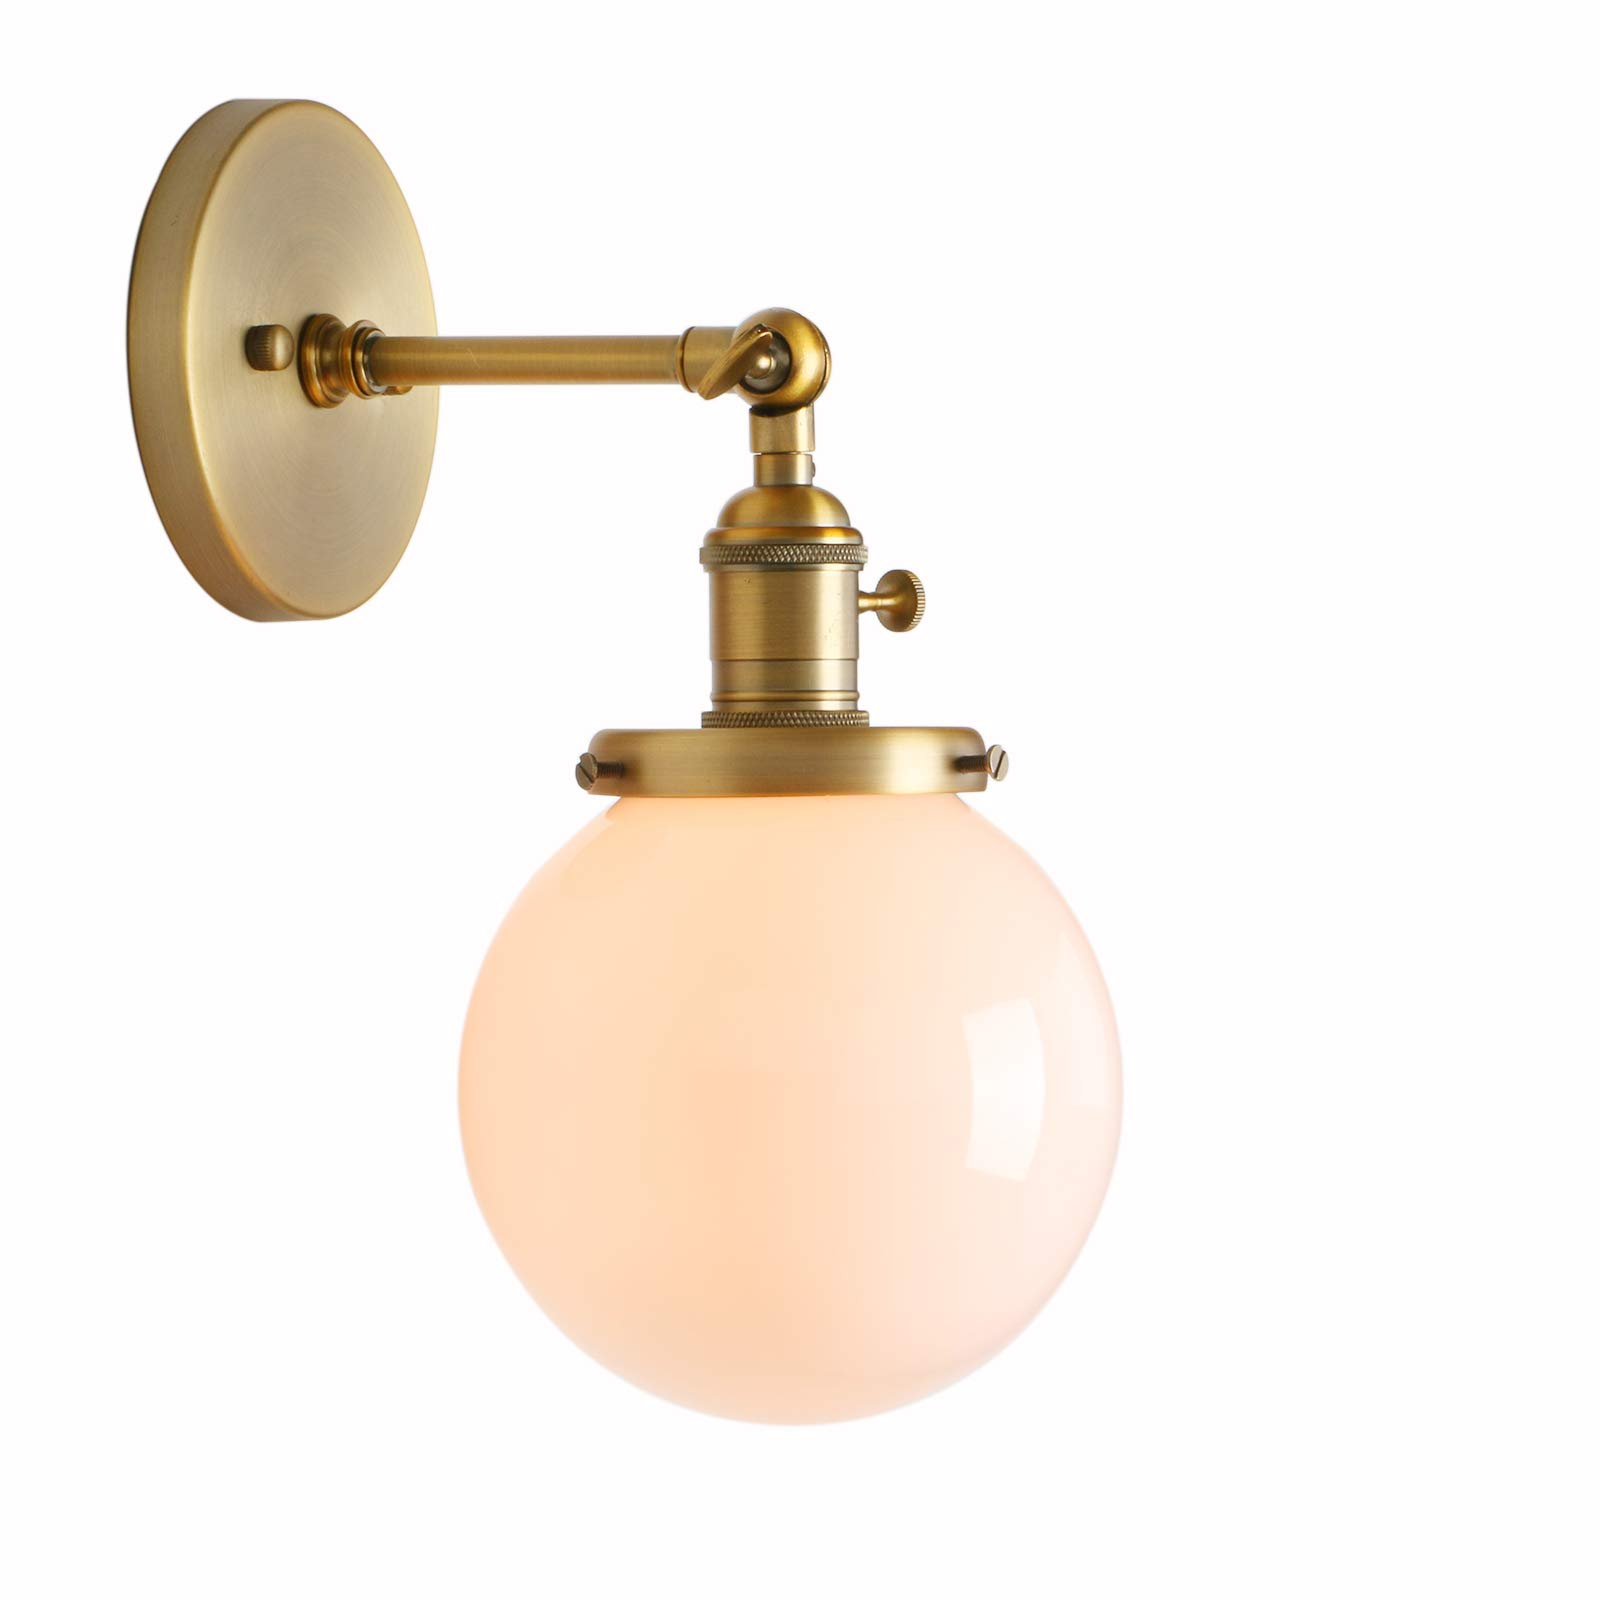 Permo Vintage Industrial Wall Sconce Lighting Fixture with Mini 5.9'' Round Globe Milk White Glass Hand Blown Shade (Anqitue) by Permo (Image #1)